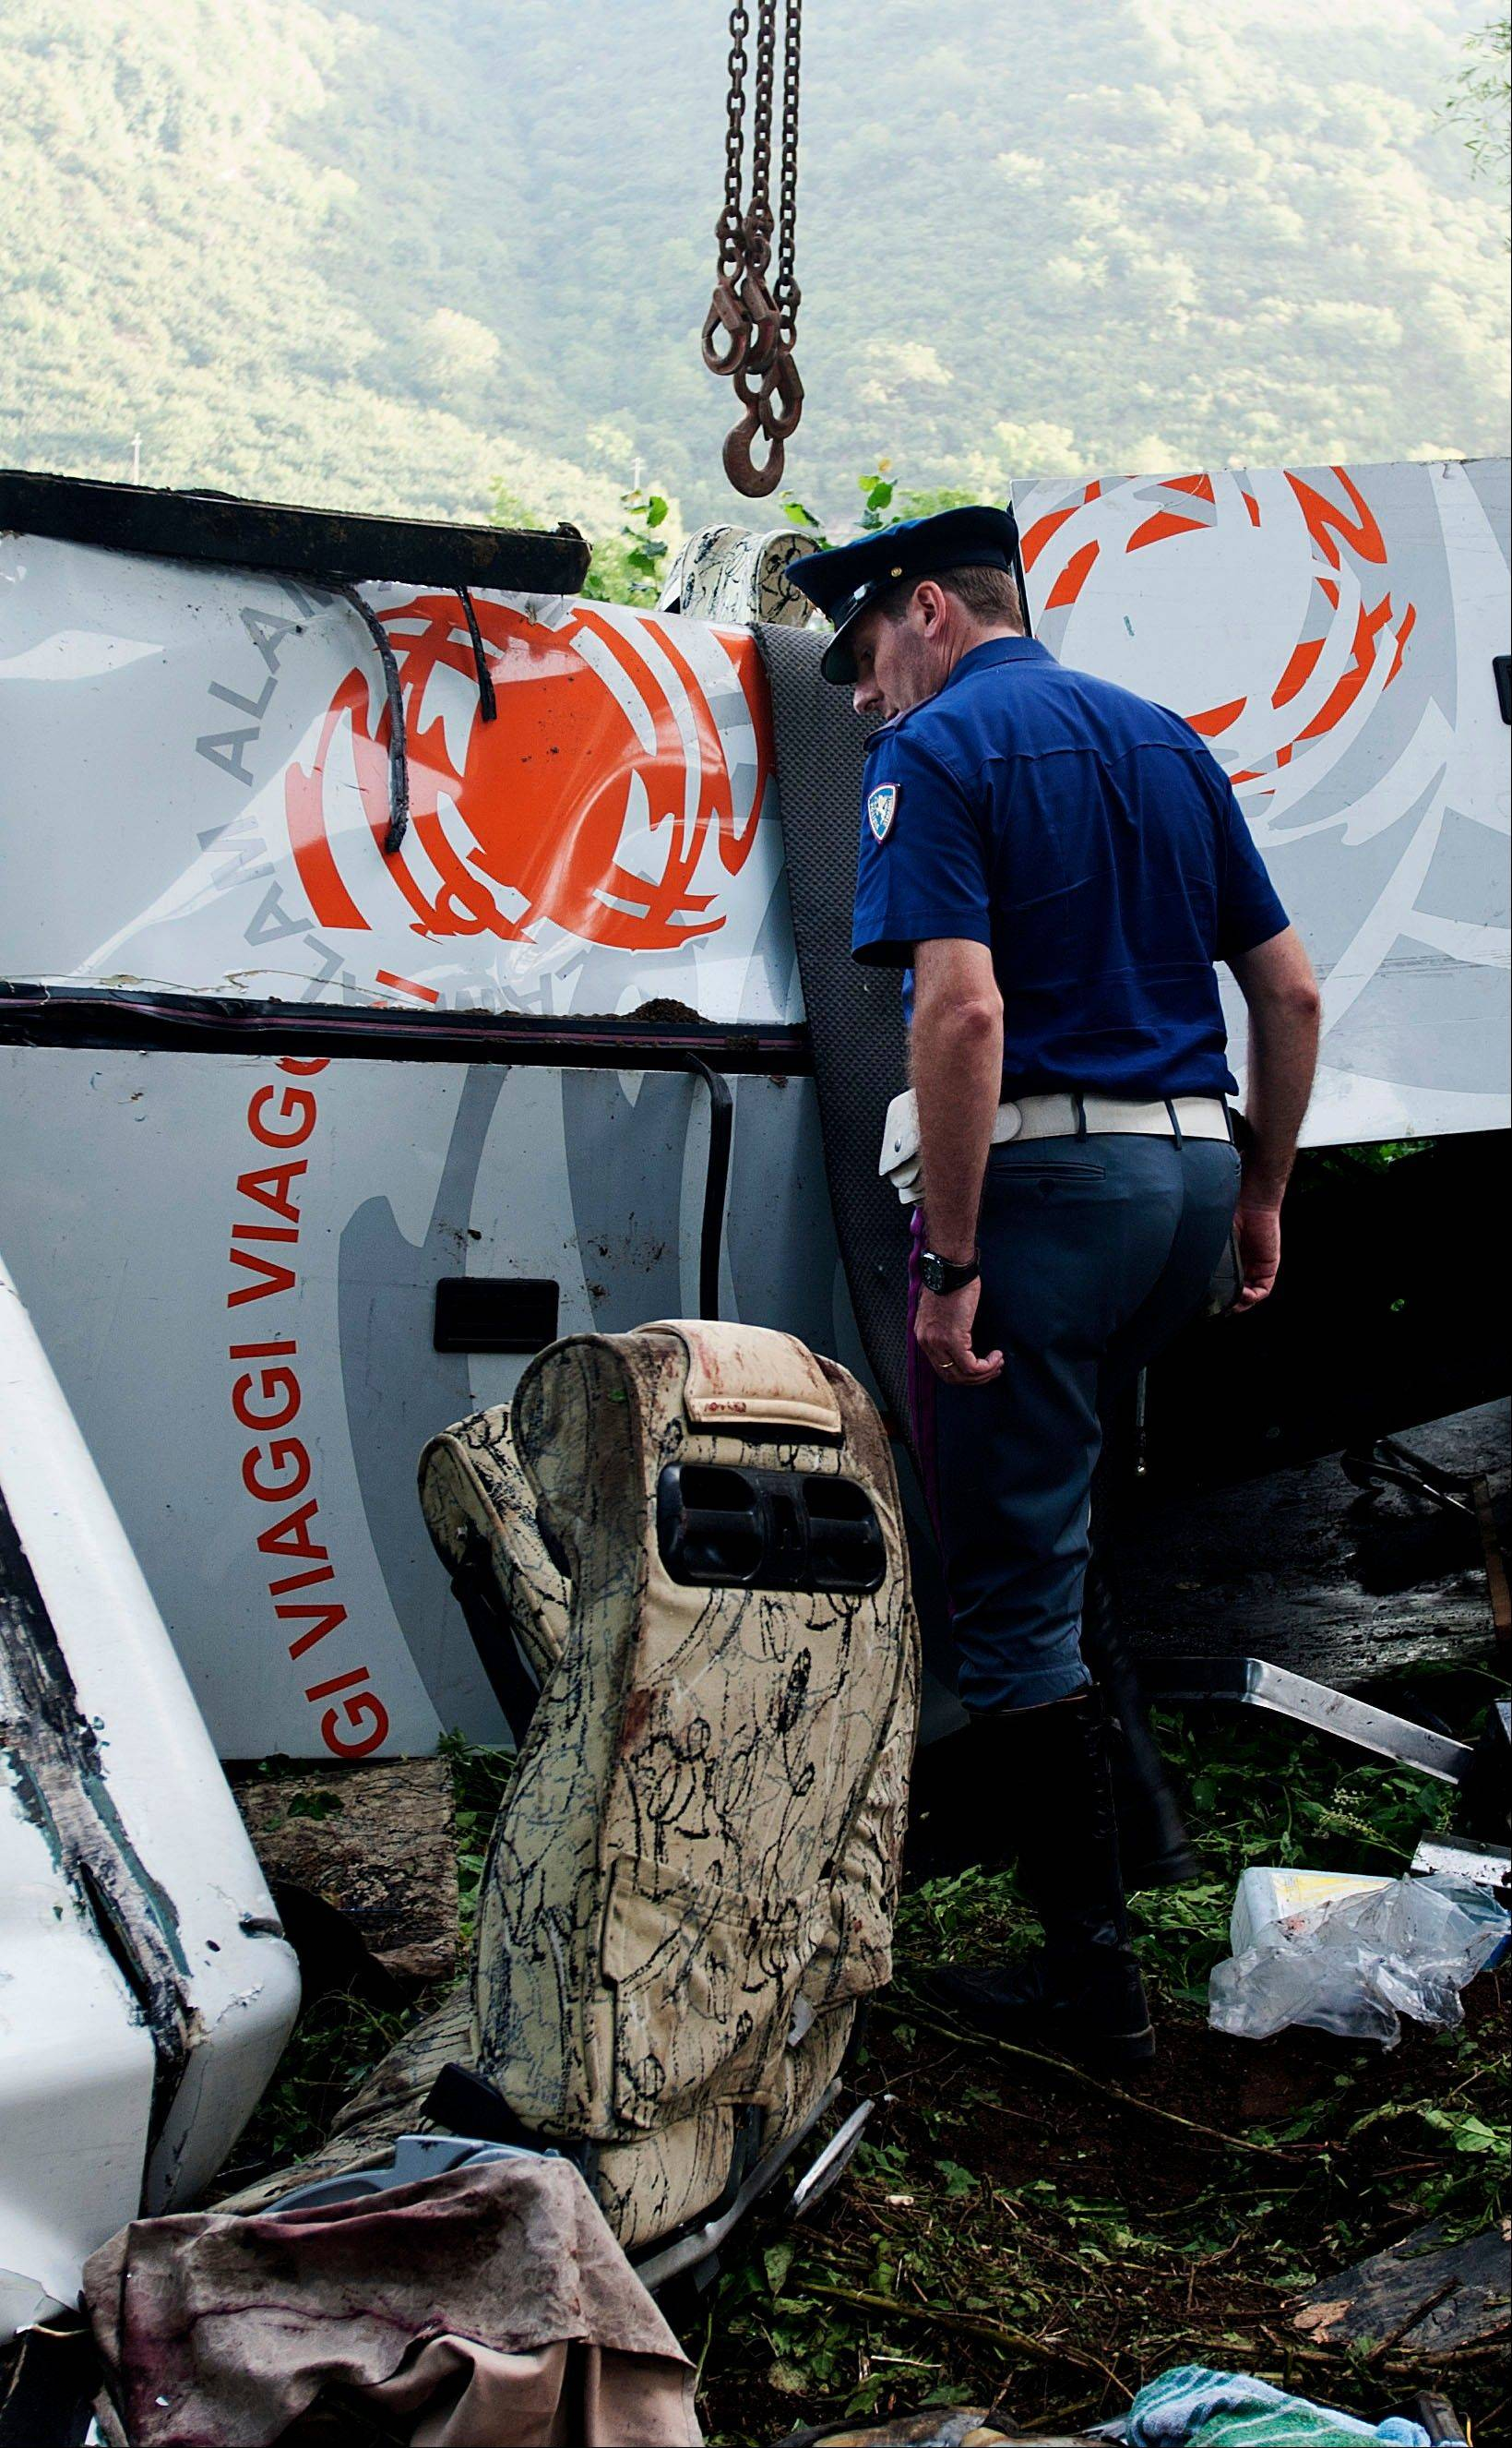 A police officer looks at in the wreckage of a bus which crashed off a highway near Avellino, southern Italy, Monday, July 29, 2013. Rescuers wielding electric saws cut through the twisted wreckage of an Italian tour bus for survivors of a crash in southern Italy that killed at least 37 people after it crashed into traffic and plunged into a ravine on Sunday night. Reports said as many as 49 people, mostly Italians, had been aboard the bus when it ripped through a guardrail, then plunged some 30 meters (100 feet) off a viaduct near a wooded area.